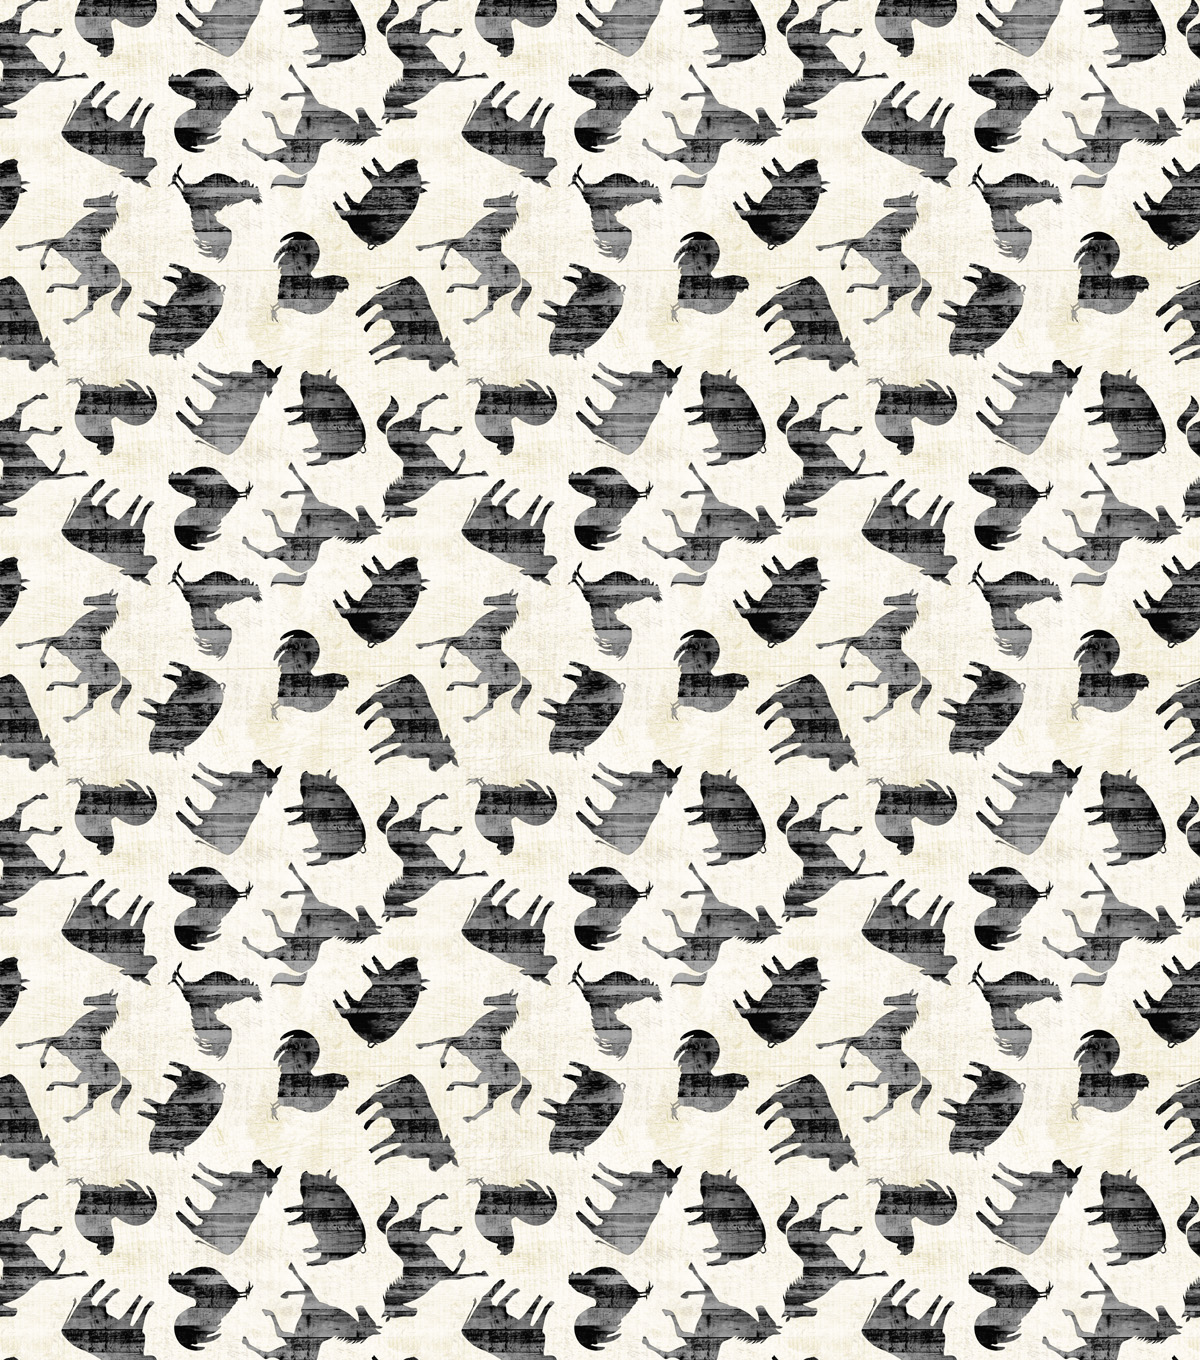 Novelty Cotton Fabric-Silhouette Farm Animals